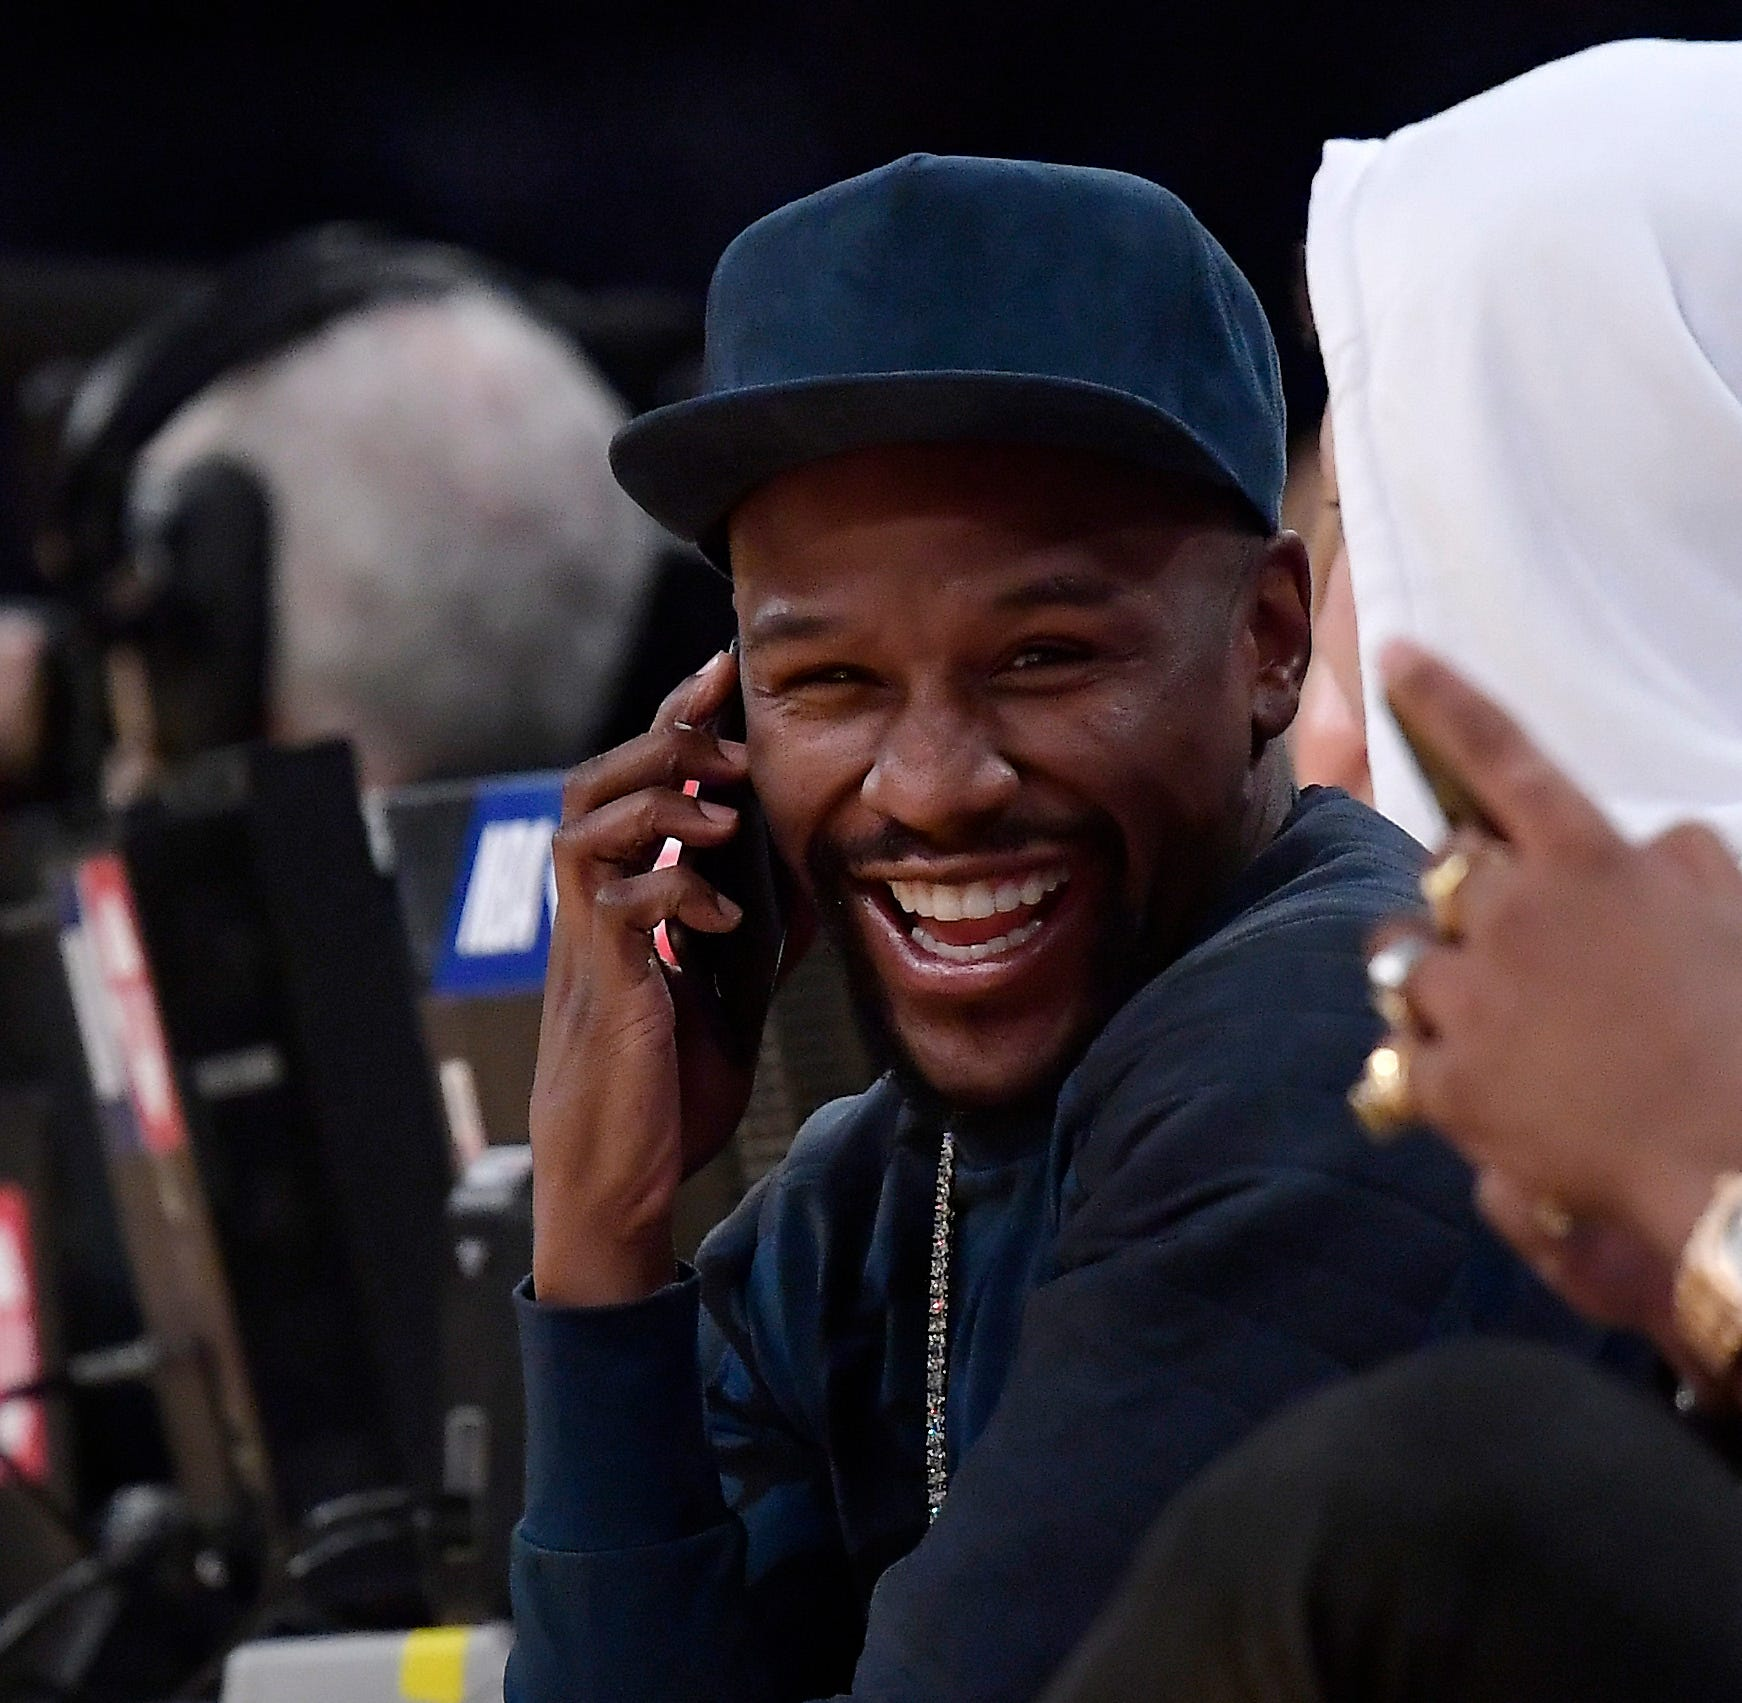 Floyd Mayweather Jr. appears at 'Bicentennial Beatdown' bouts in Memphis